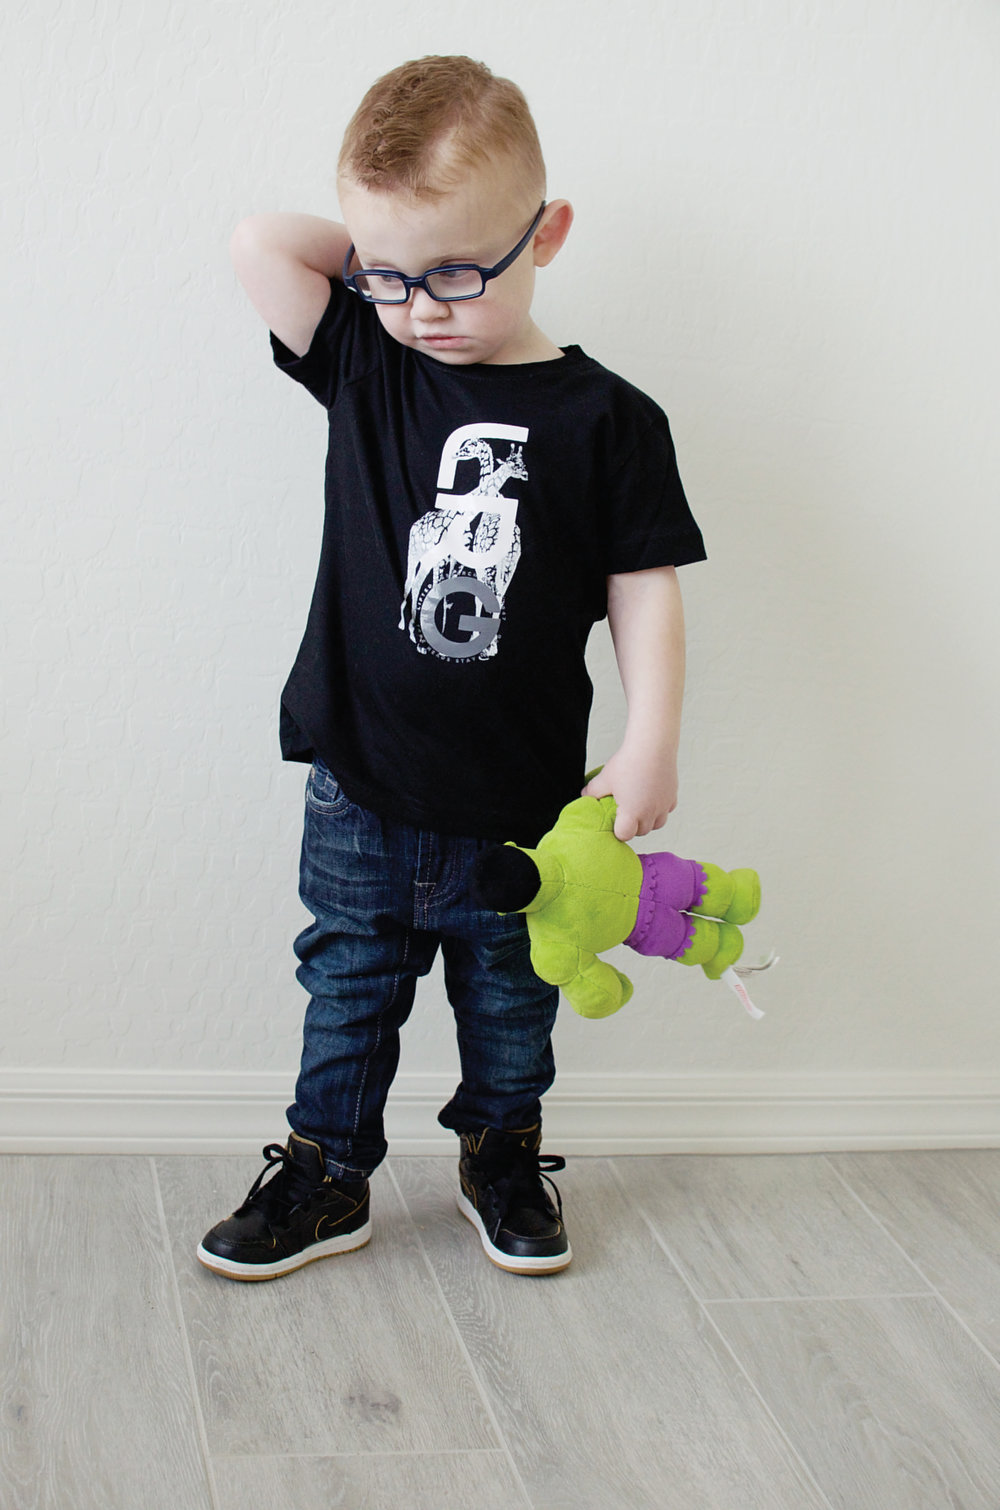 Seven Mankind Jeans and Graphic T-Shirt (with Hulk)